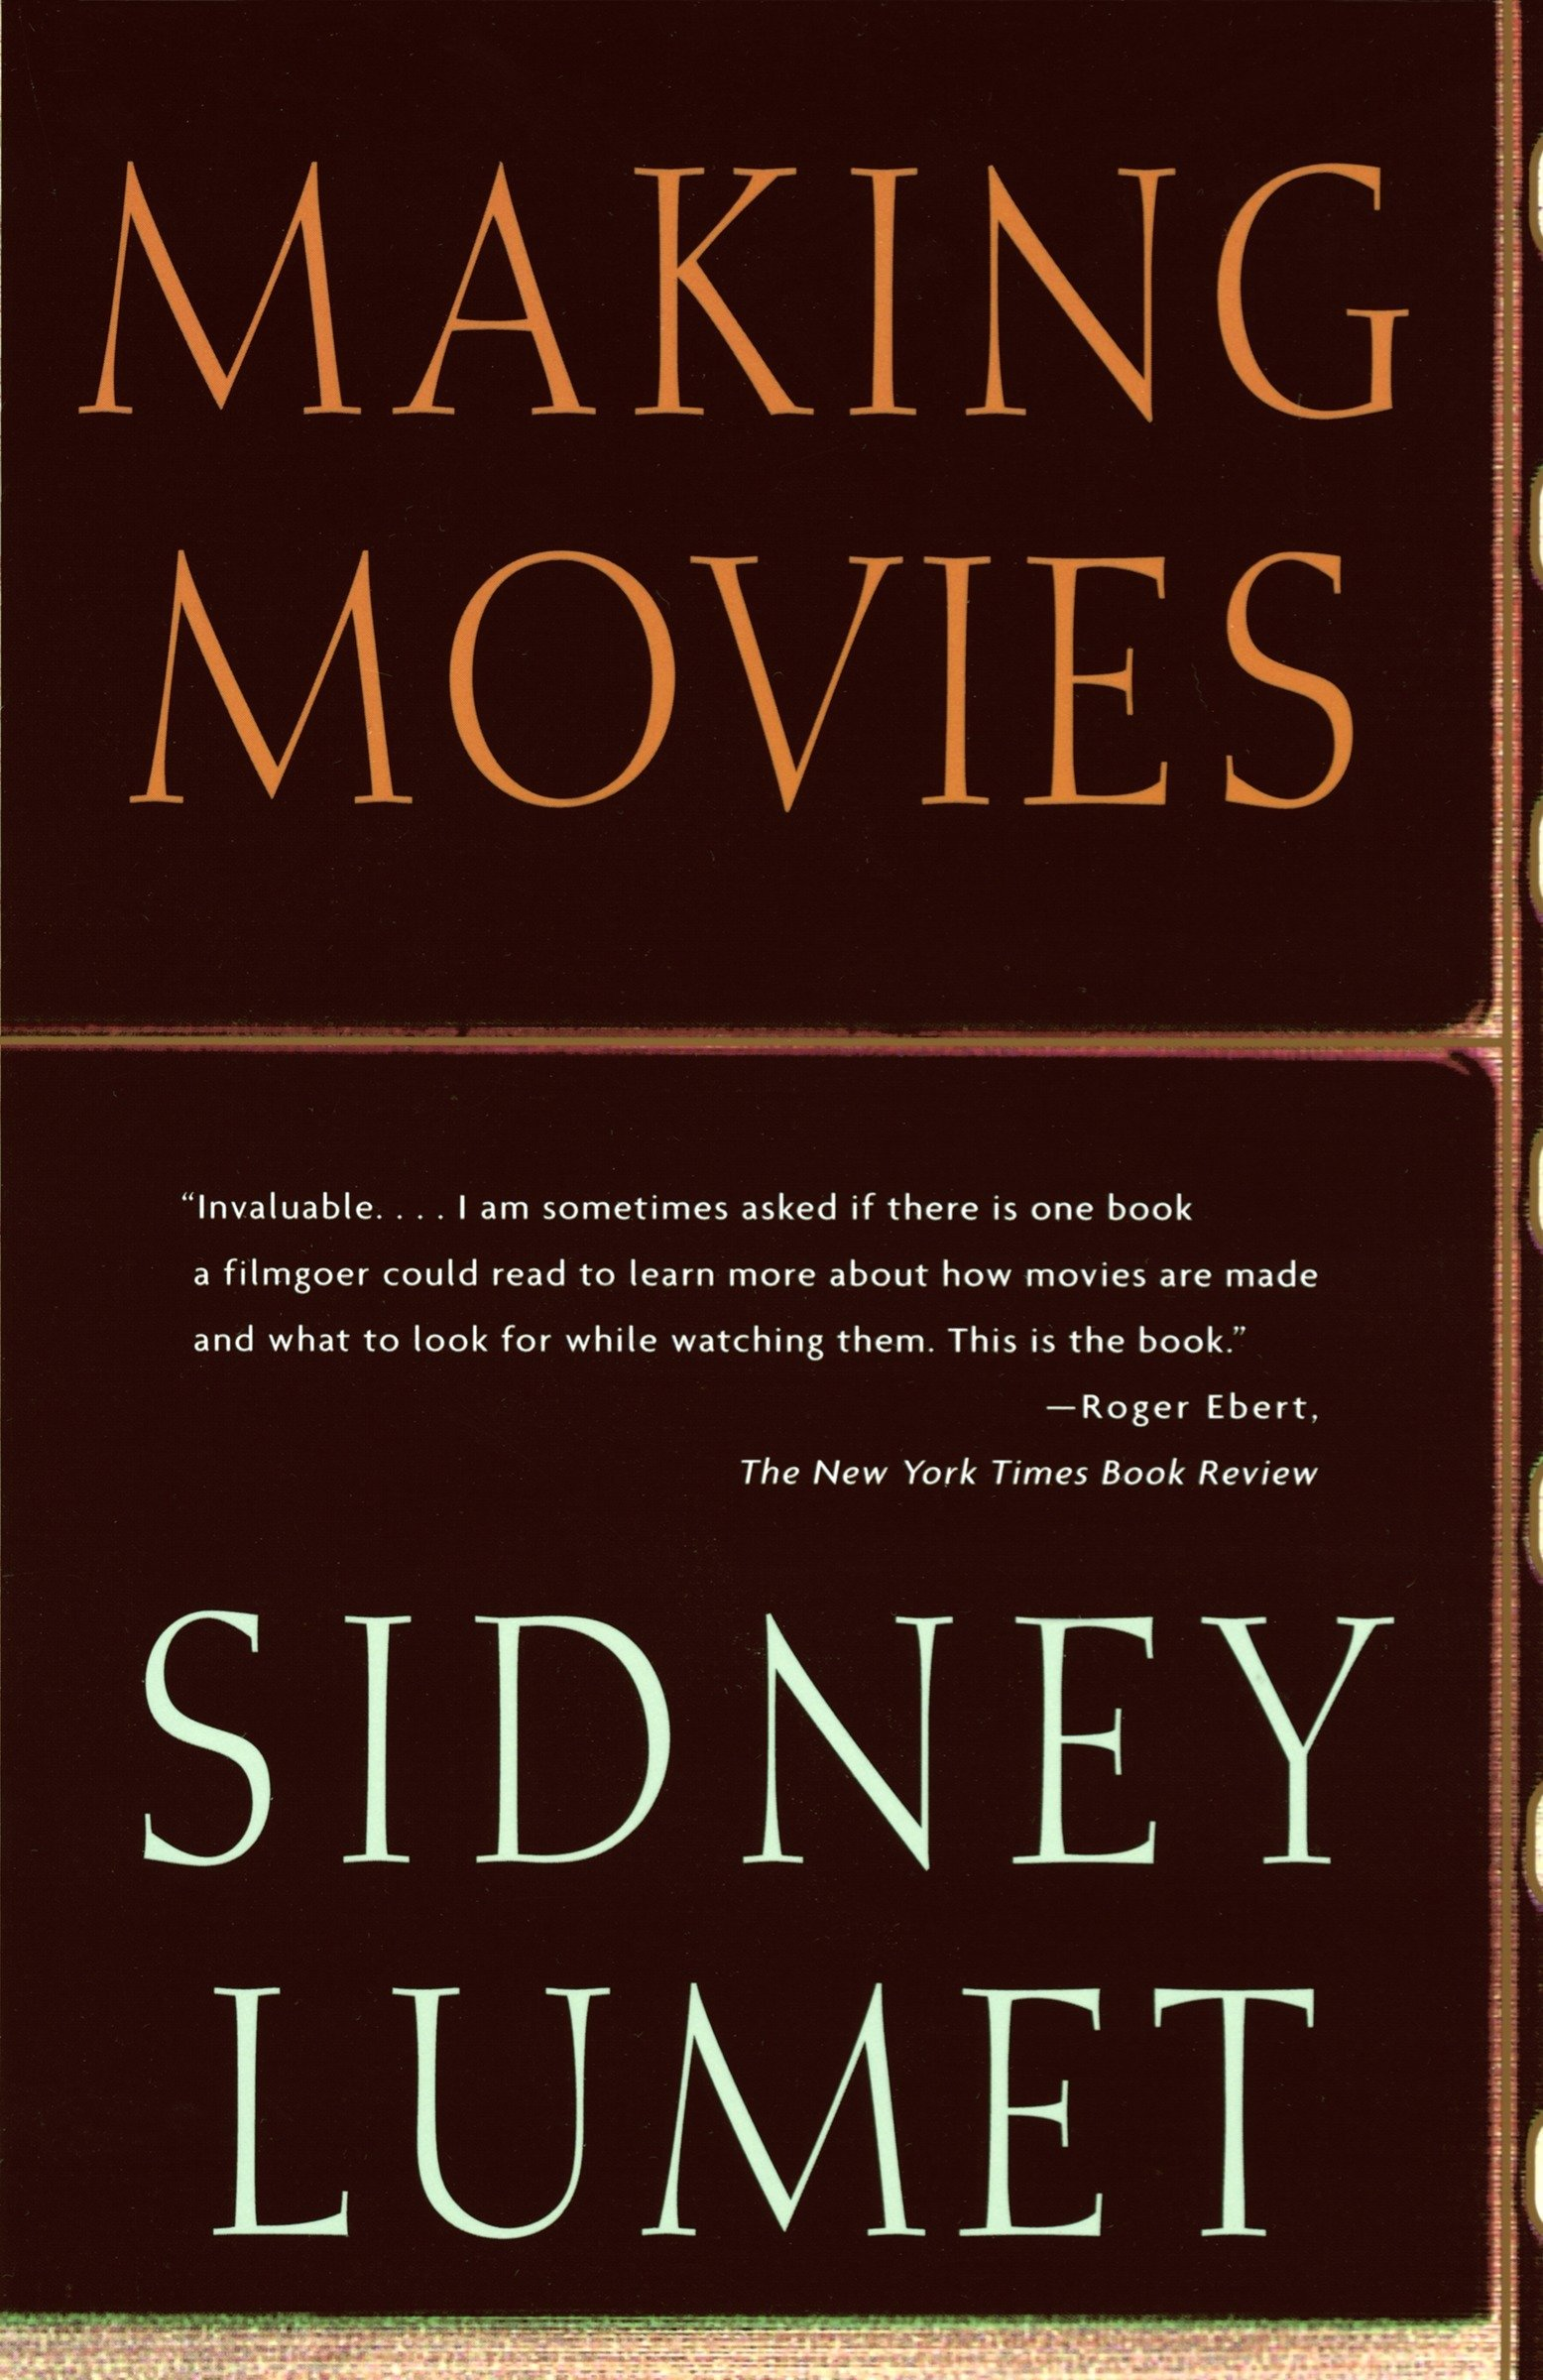 Making Movies: Lumet, Sidney: 9780679756606: Amazon.com: Books